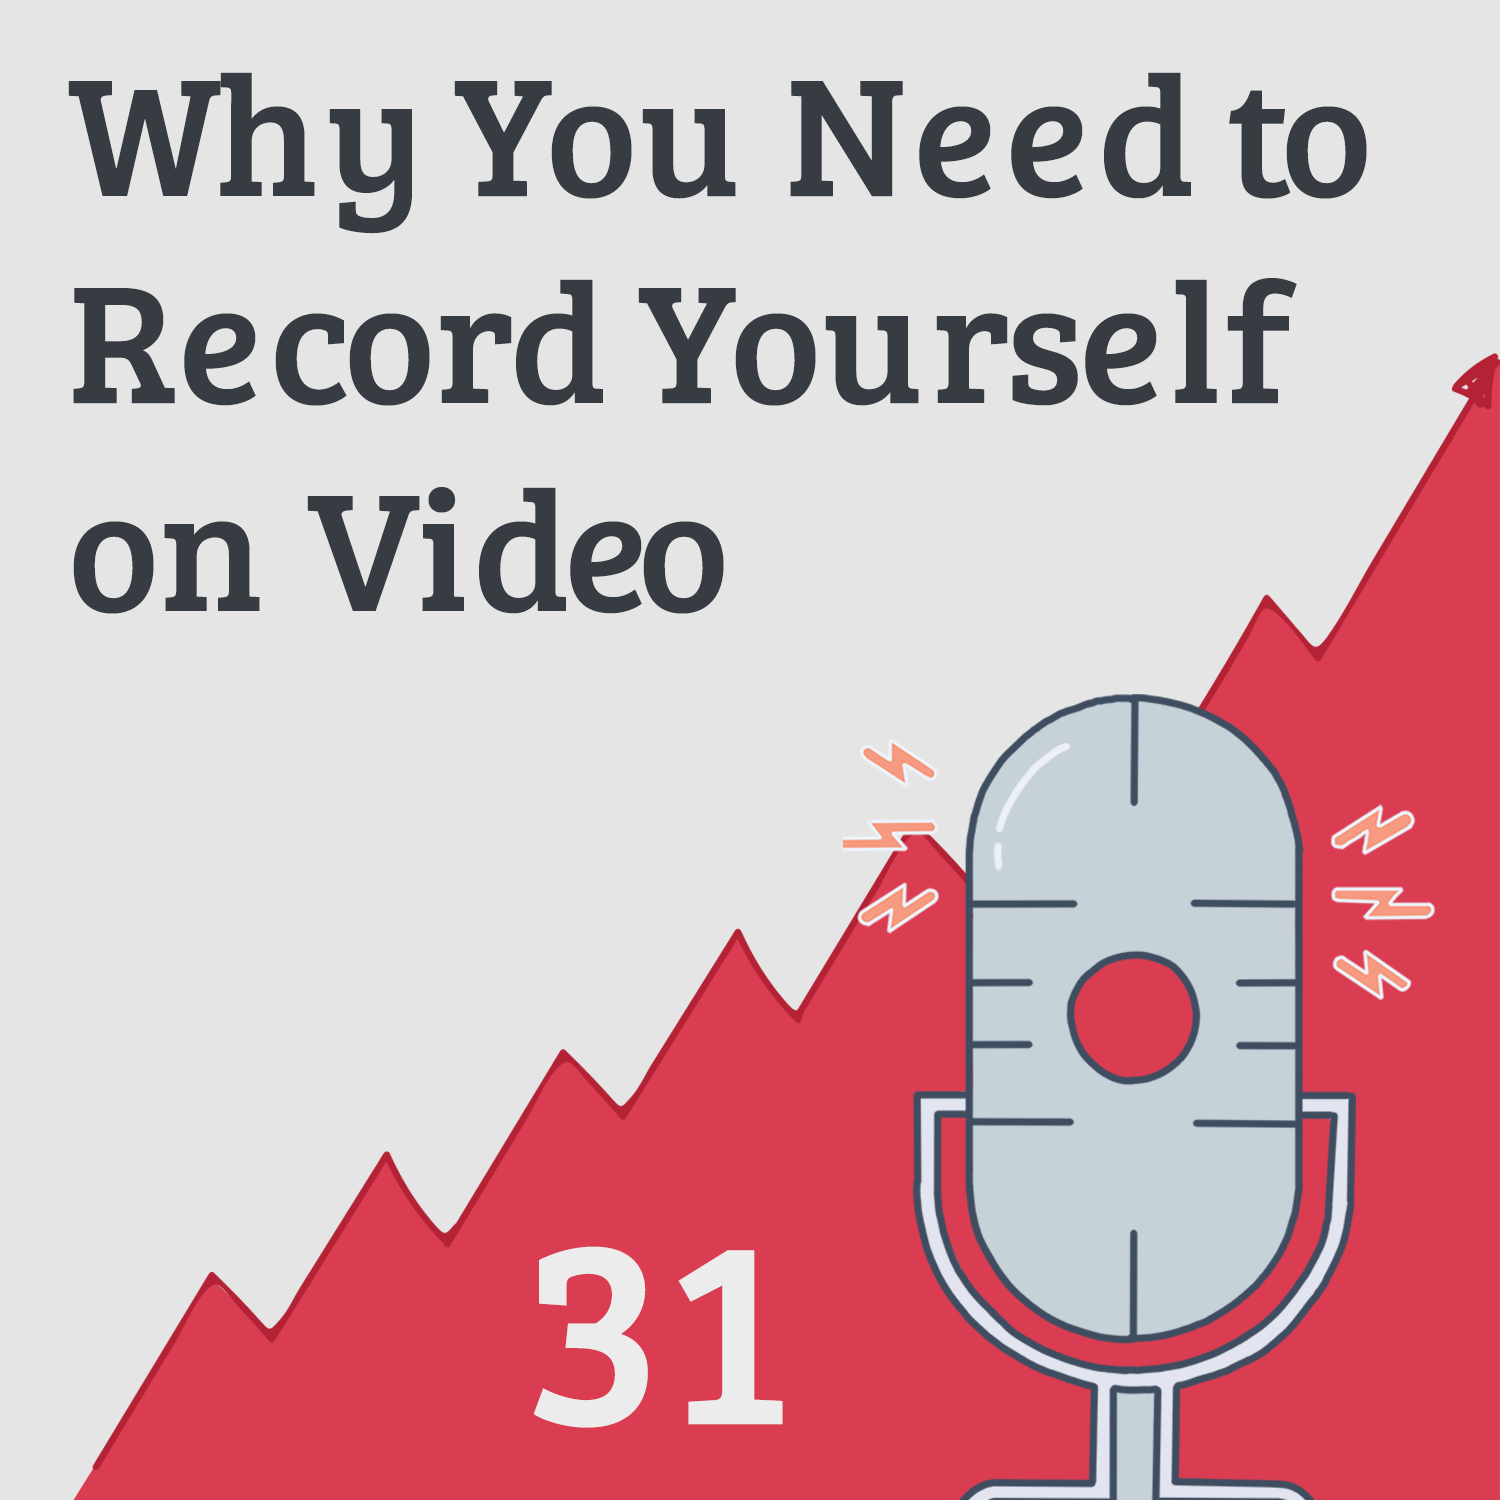 Why You Need to Record Yourself on Video